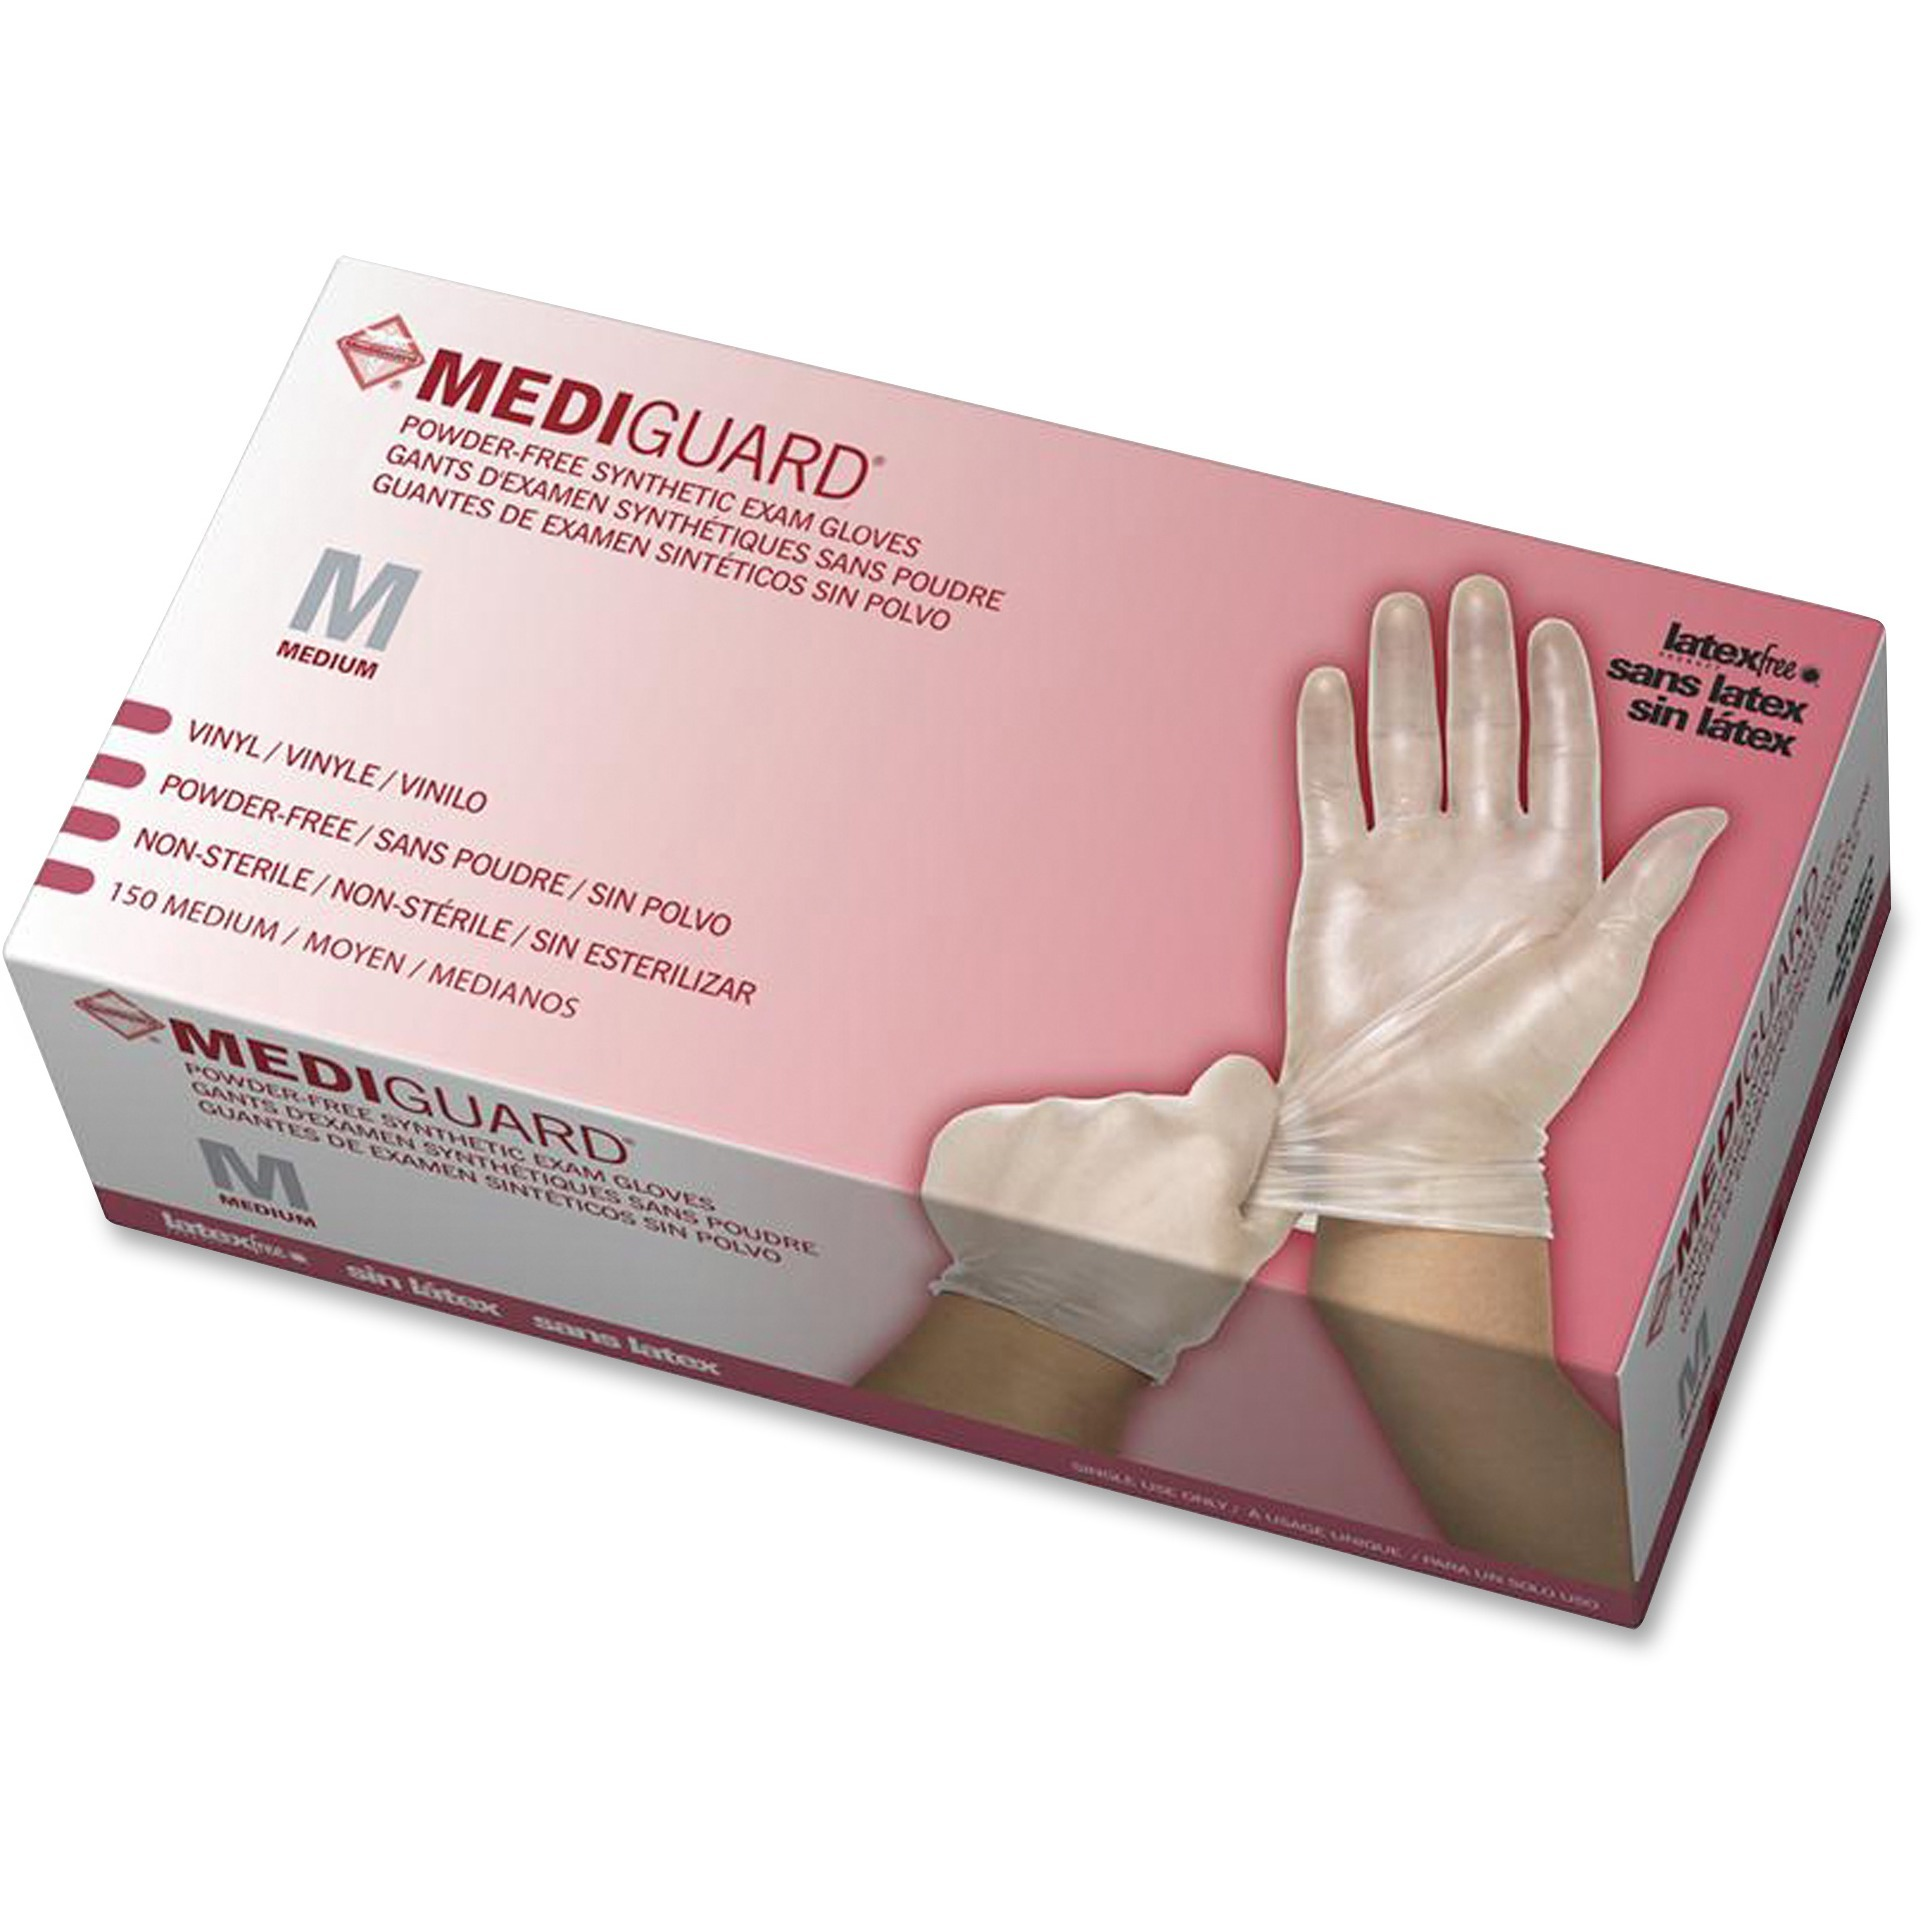 Medline, MII6MSV512, MediGuard Vinyl Non-sterile Exam Gloves, 150 / Box, Clear